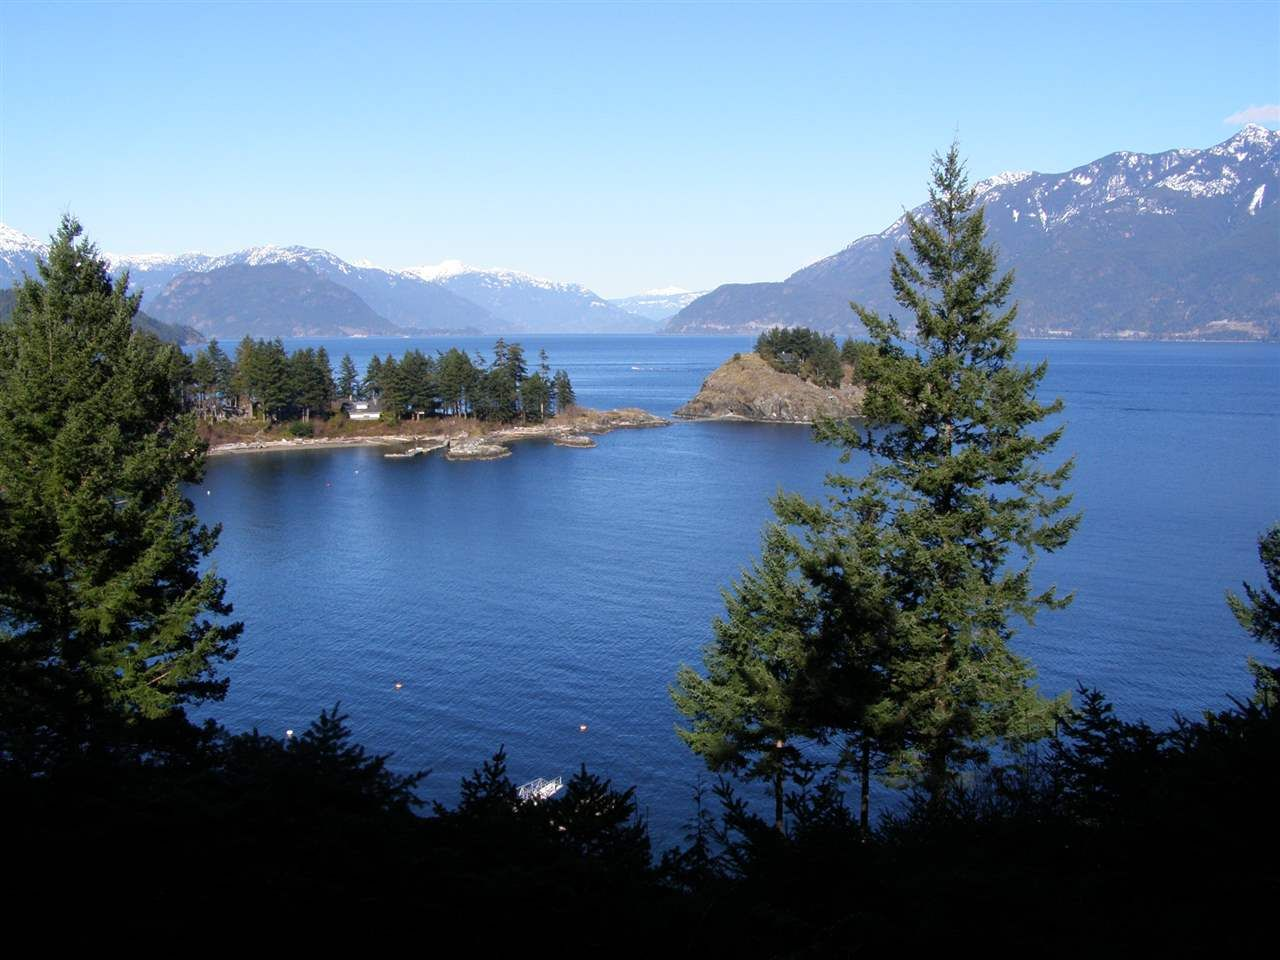 Main Photo: LOT 2 SMUGGLERS COVE Road: Bowen Island Land for sale : MLS®# R2028802